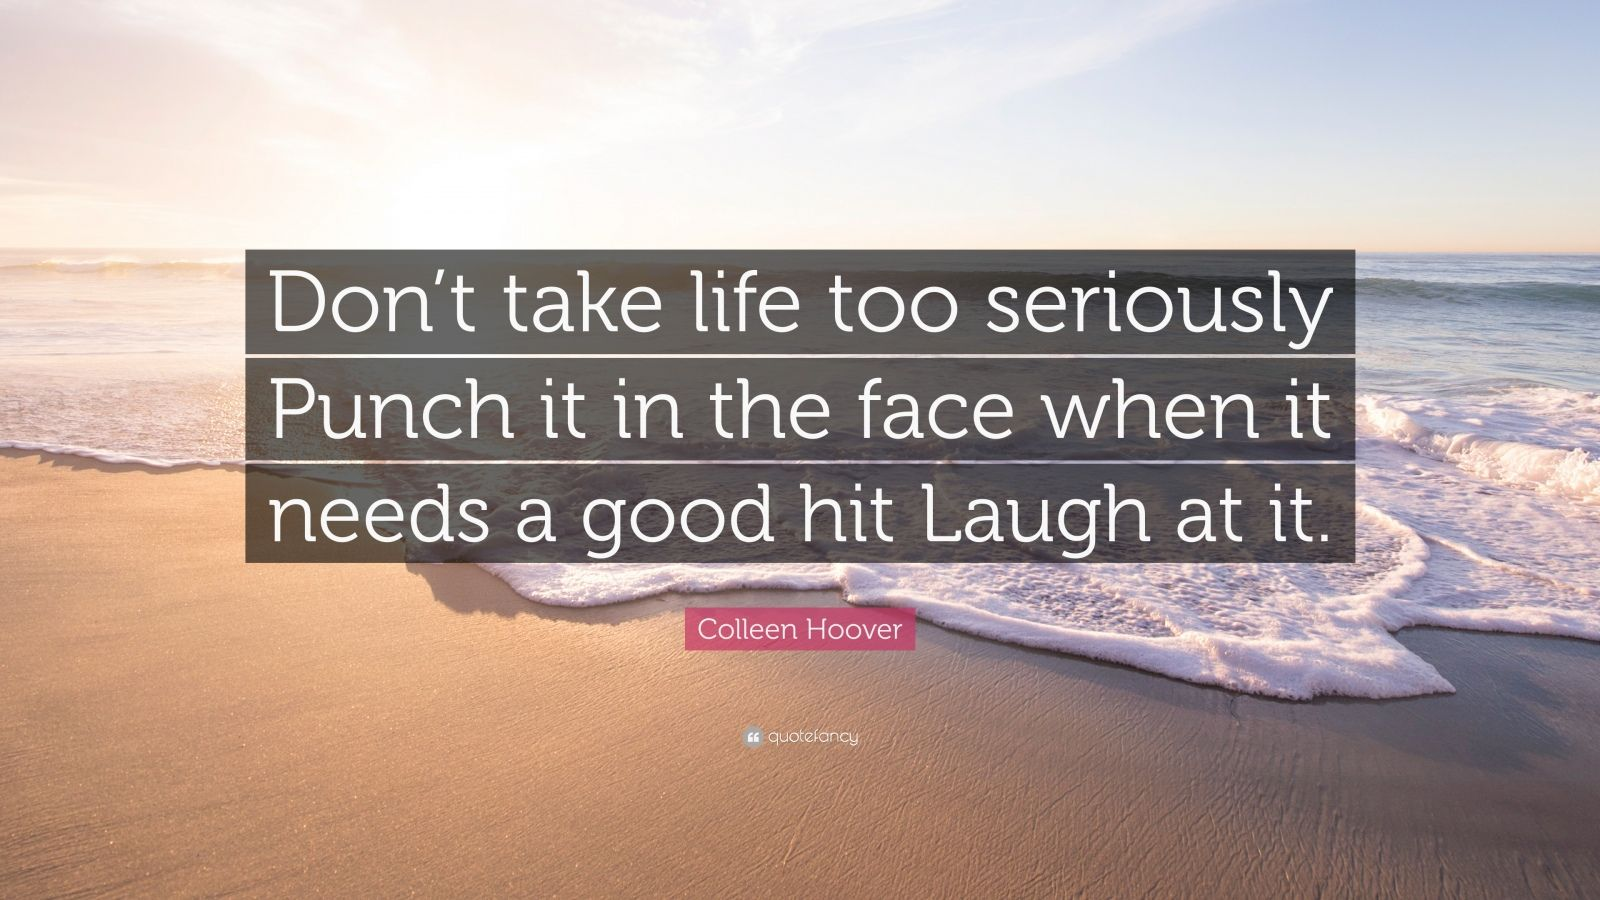 """Colleen Hoover Quote: """"Don't take life too seriously Punch it in the face when it needs a good hit Laugh at it."""""""